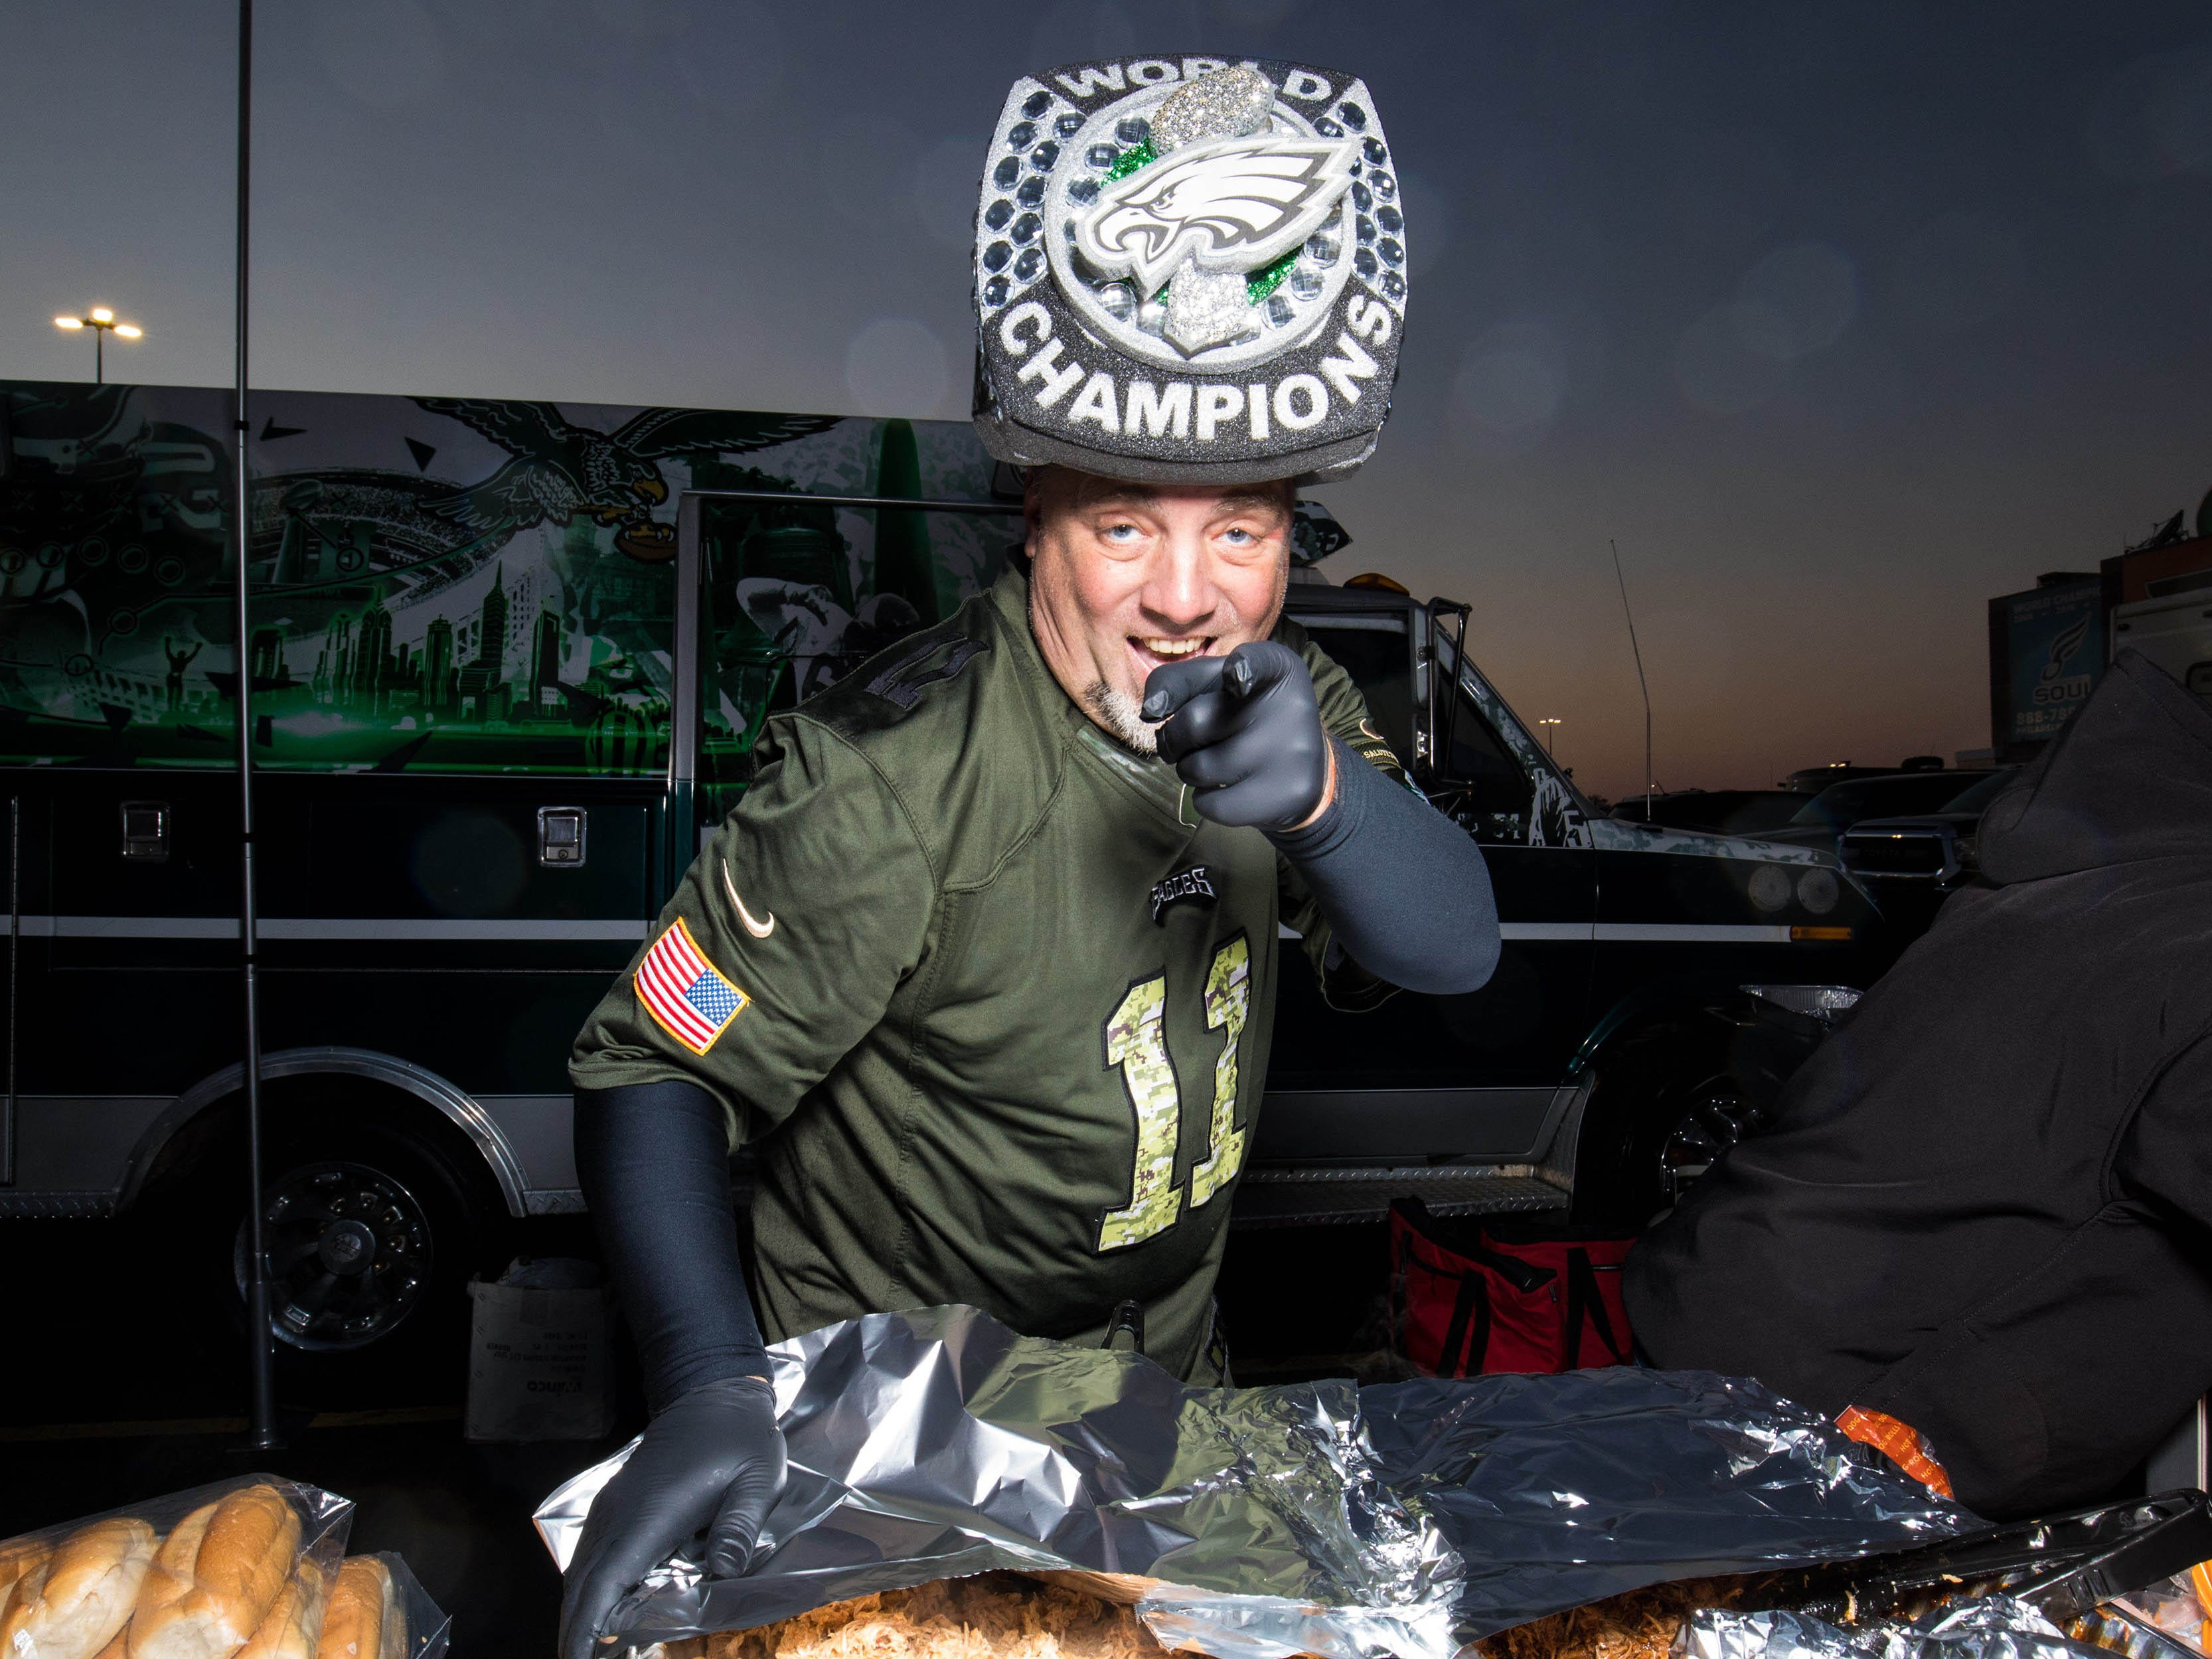 Philadelphia Eagles fan Mike Young poses for a photo outside Lincoln Financial Field before action against the Dallas Cowboys.